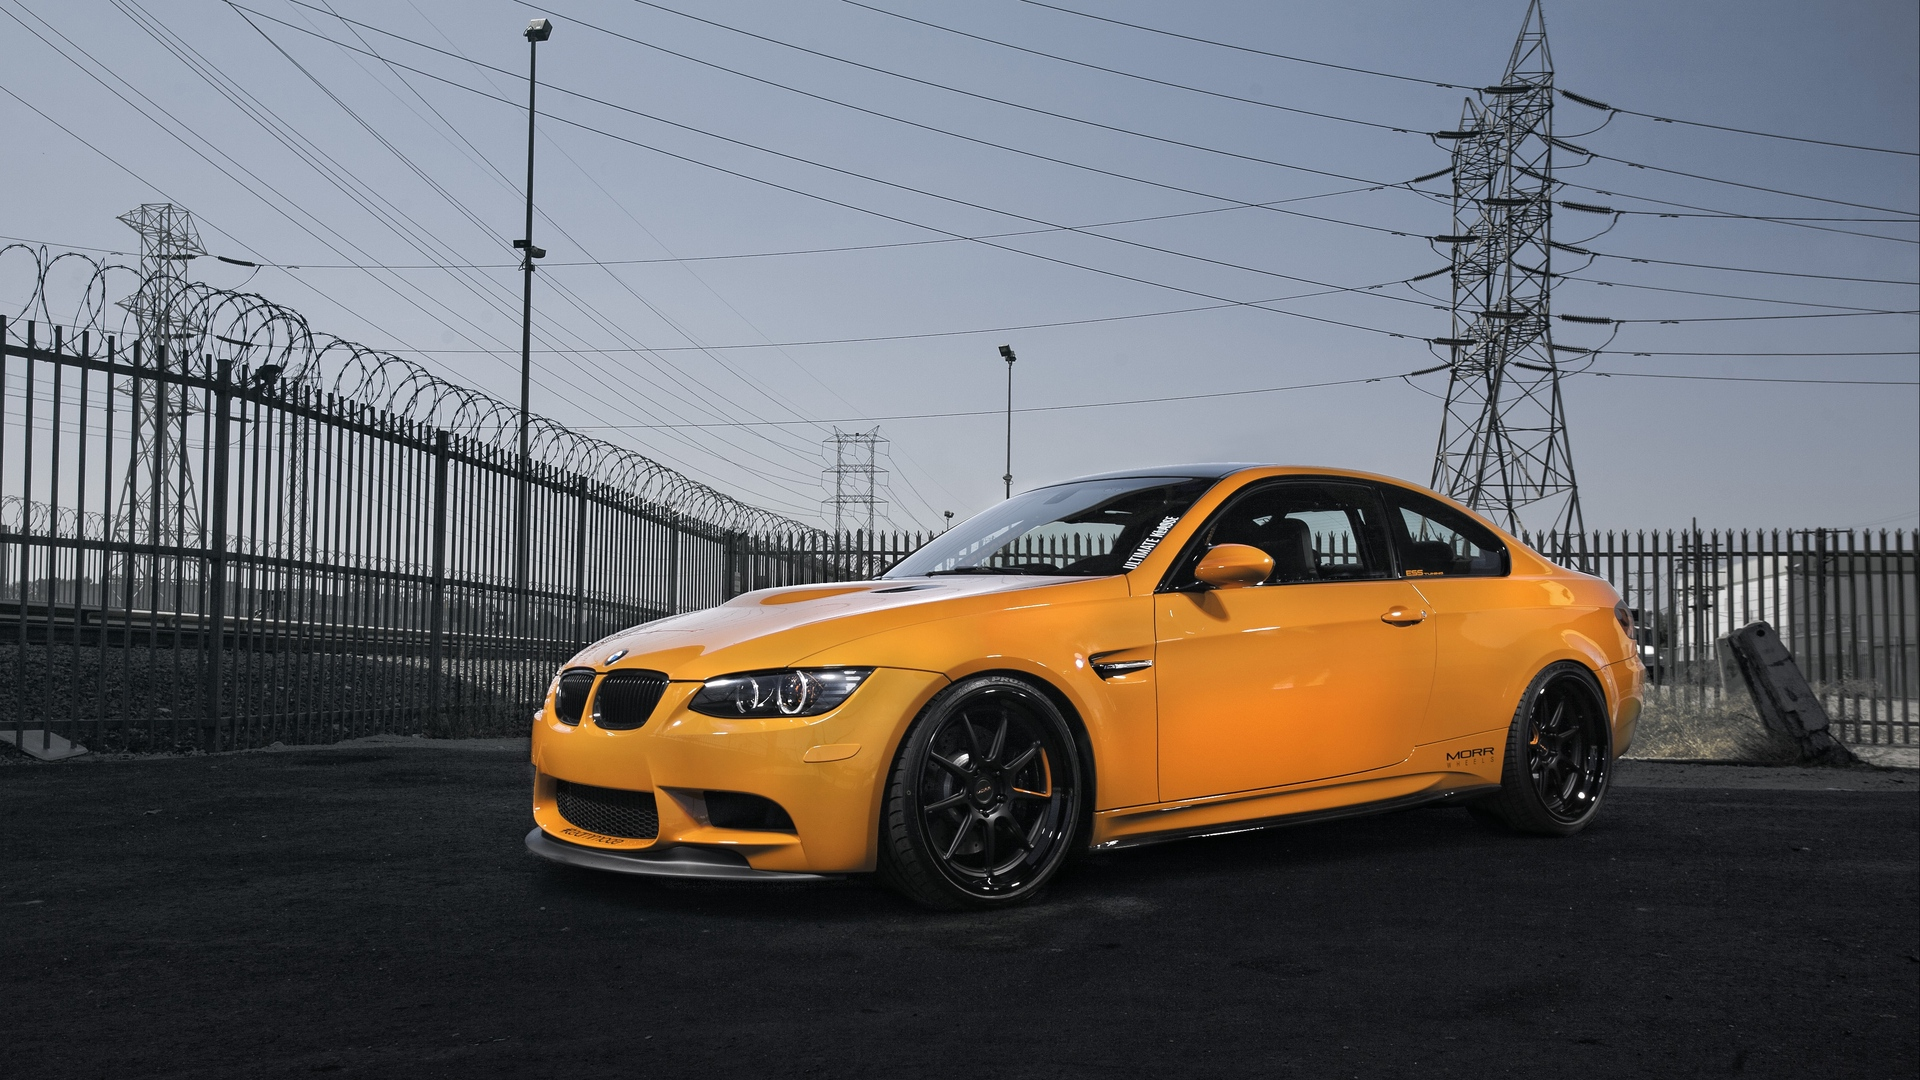 and,force,ability,business,cars,top executive,view,lines,crease,thought,orangeness,short letter,e92,power,bmw,m3,orange,personal credit line,descent